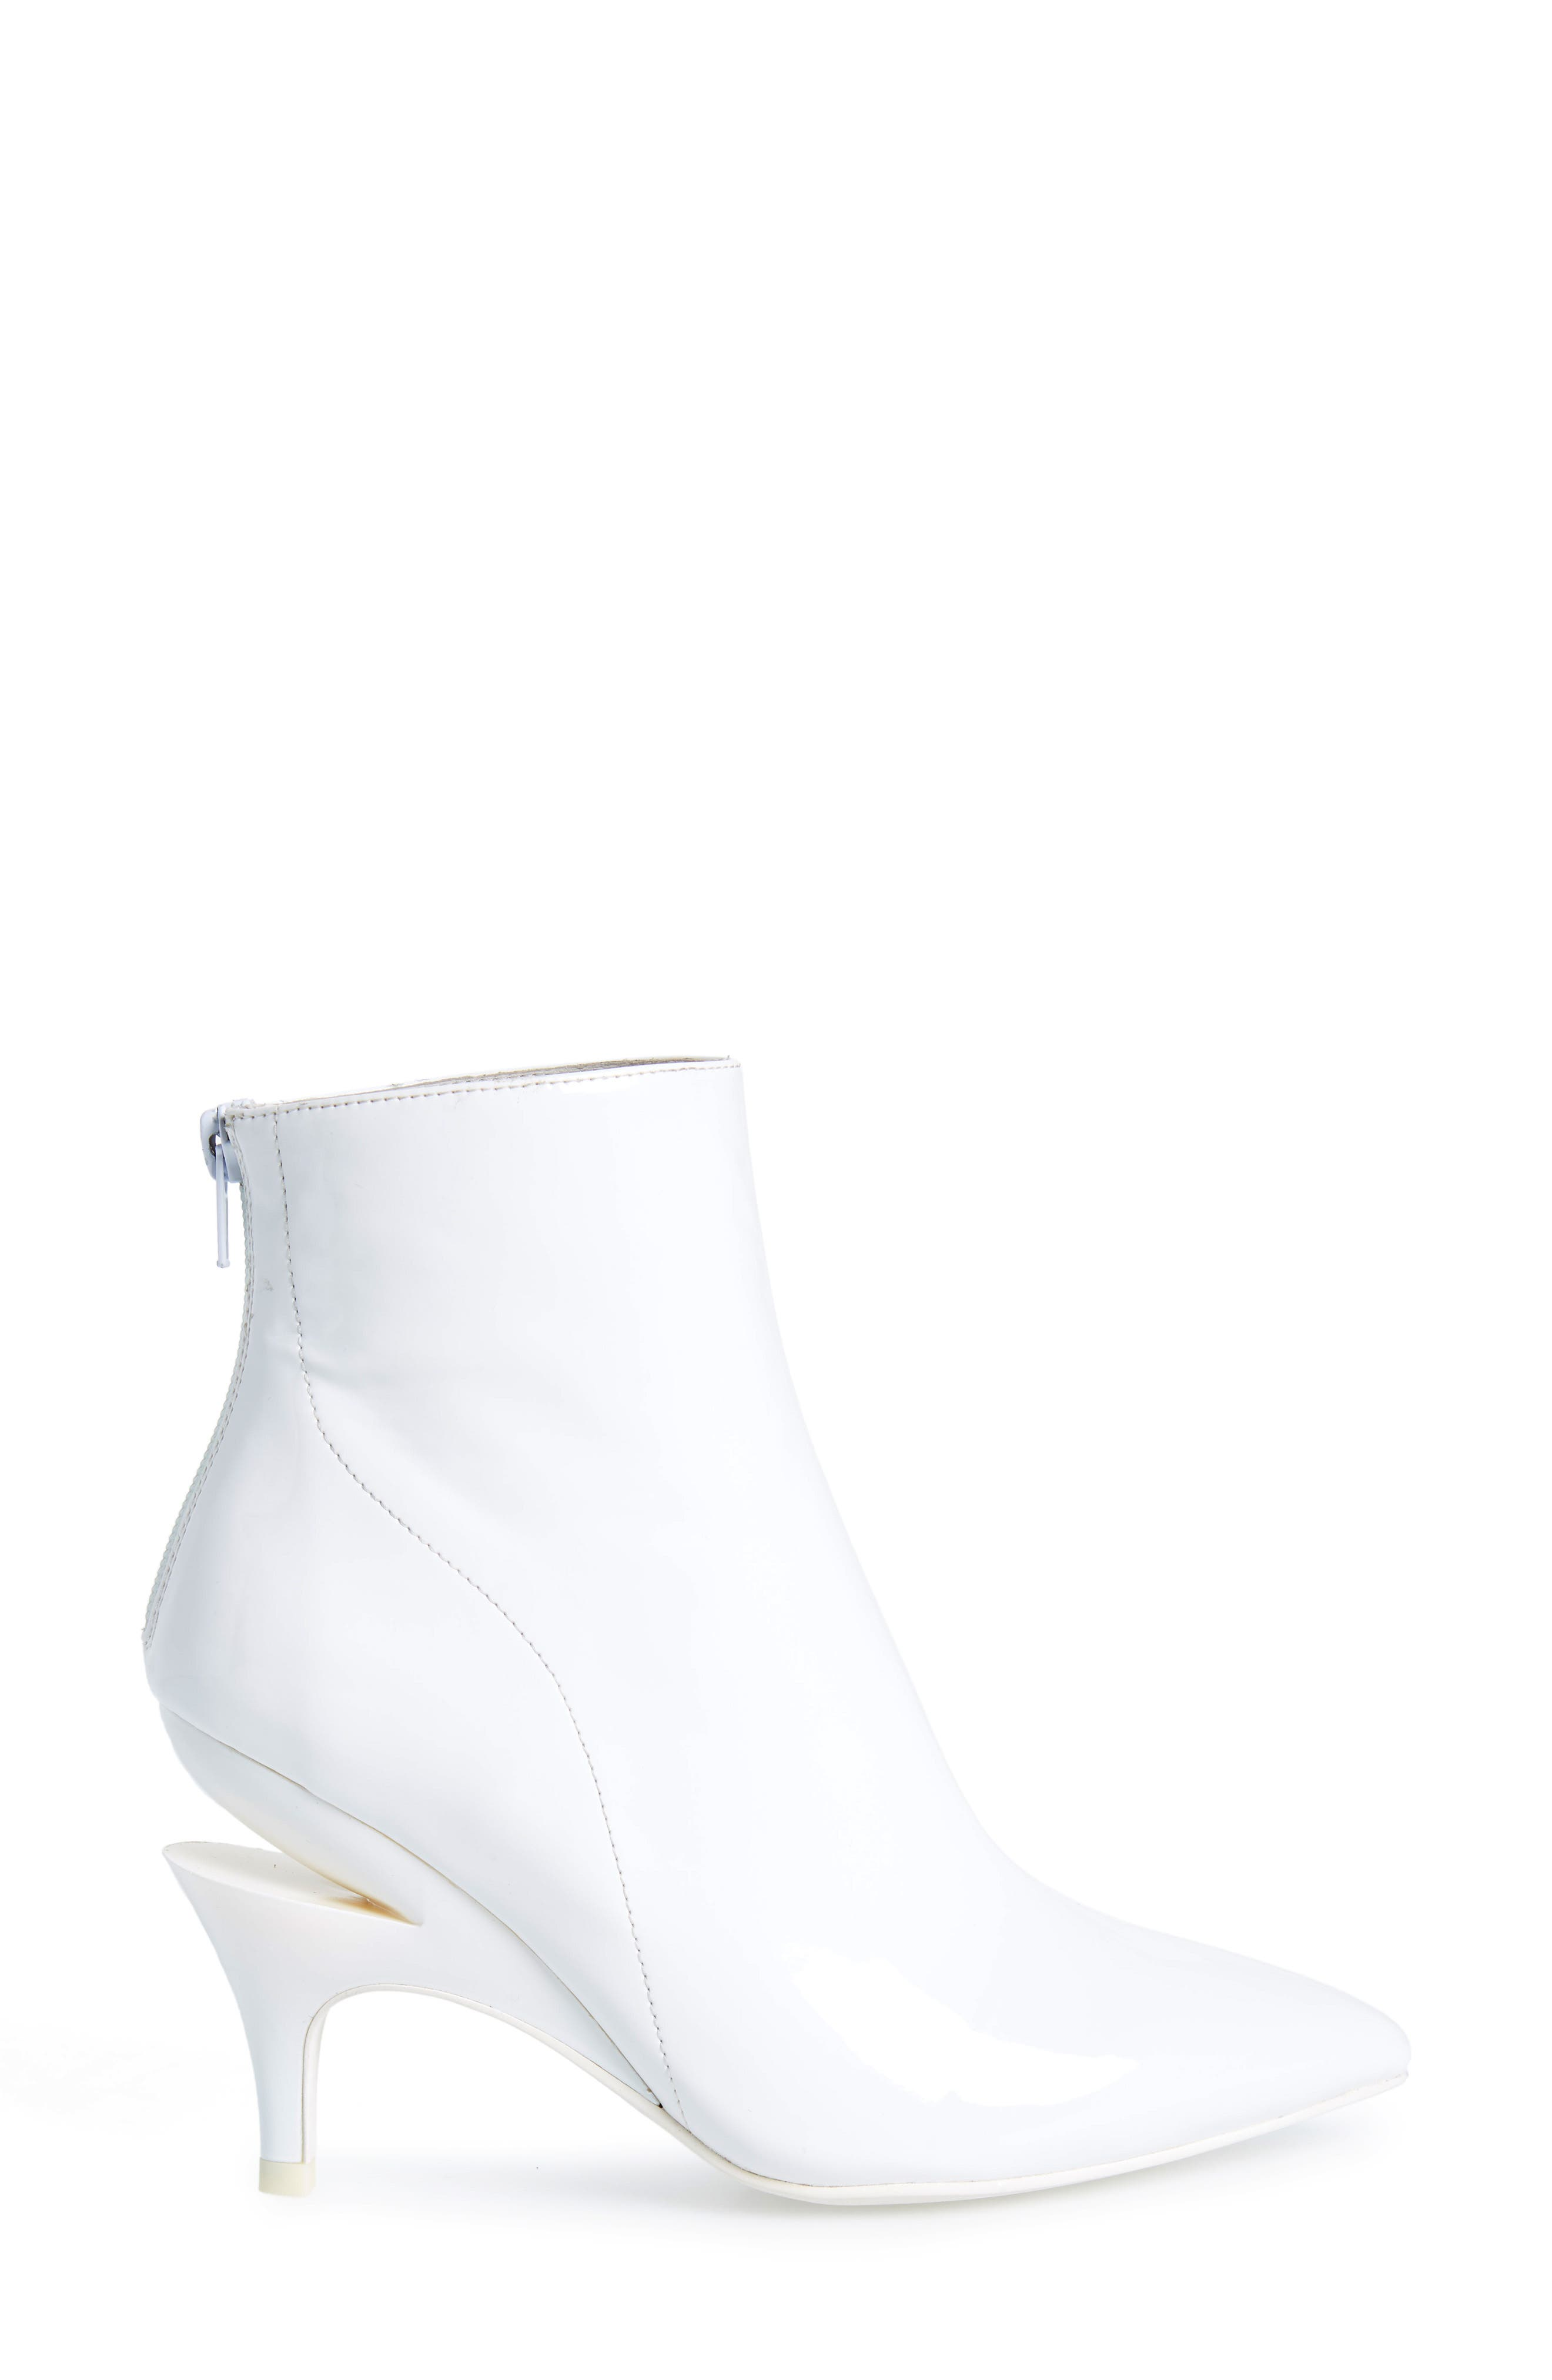 JEFFREY CAMPBELL, Museum Bootie, Alternate thumbnail 3, color, WHITE PATENT LEATHER